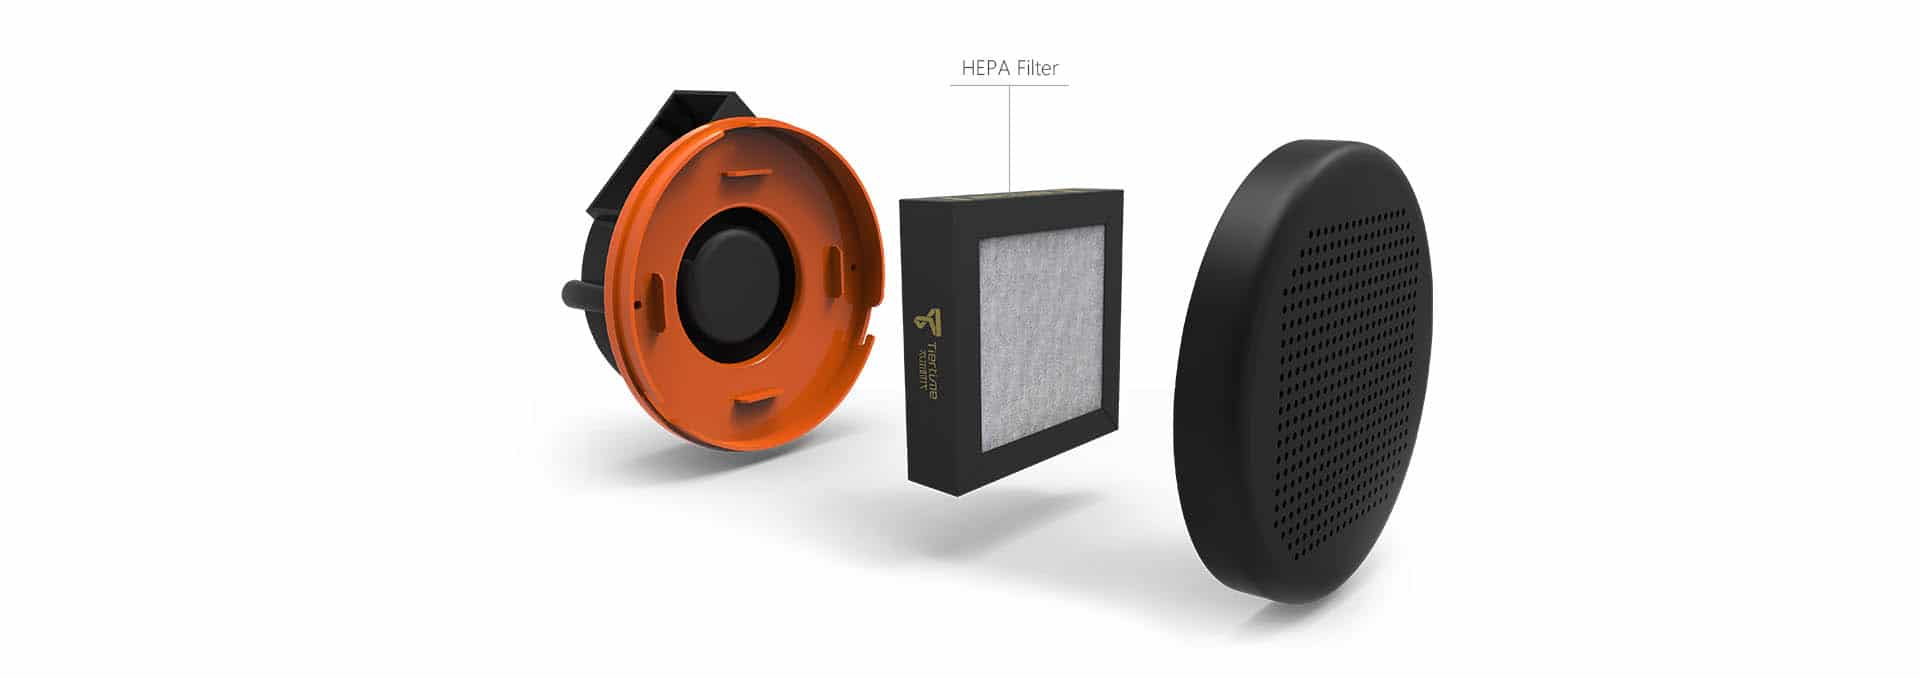 smart HEPA filtration system for safer 3D printing, includes active carbon filter